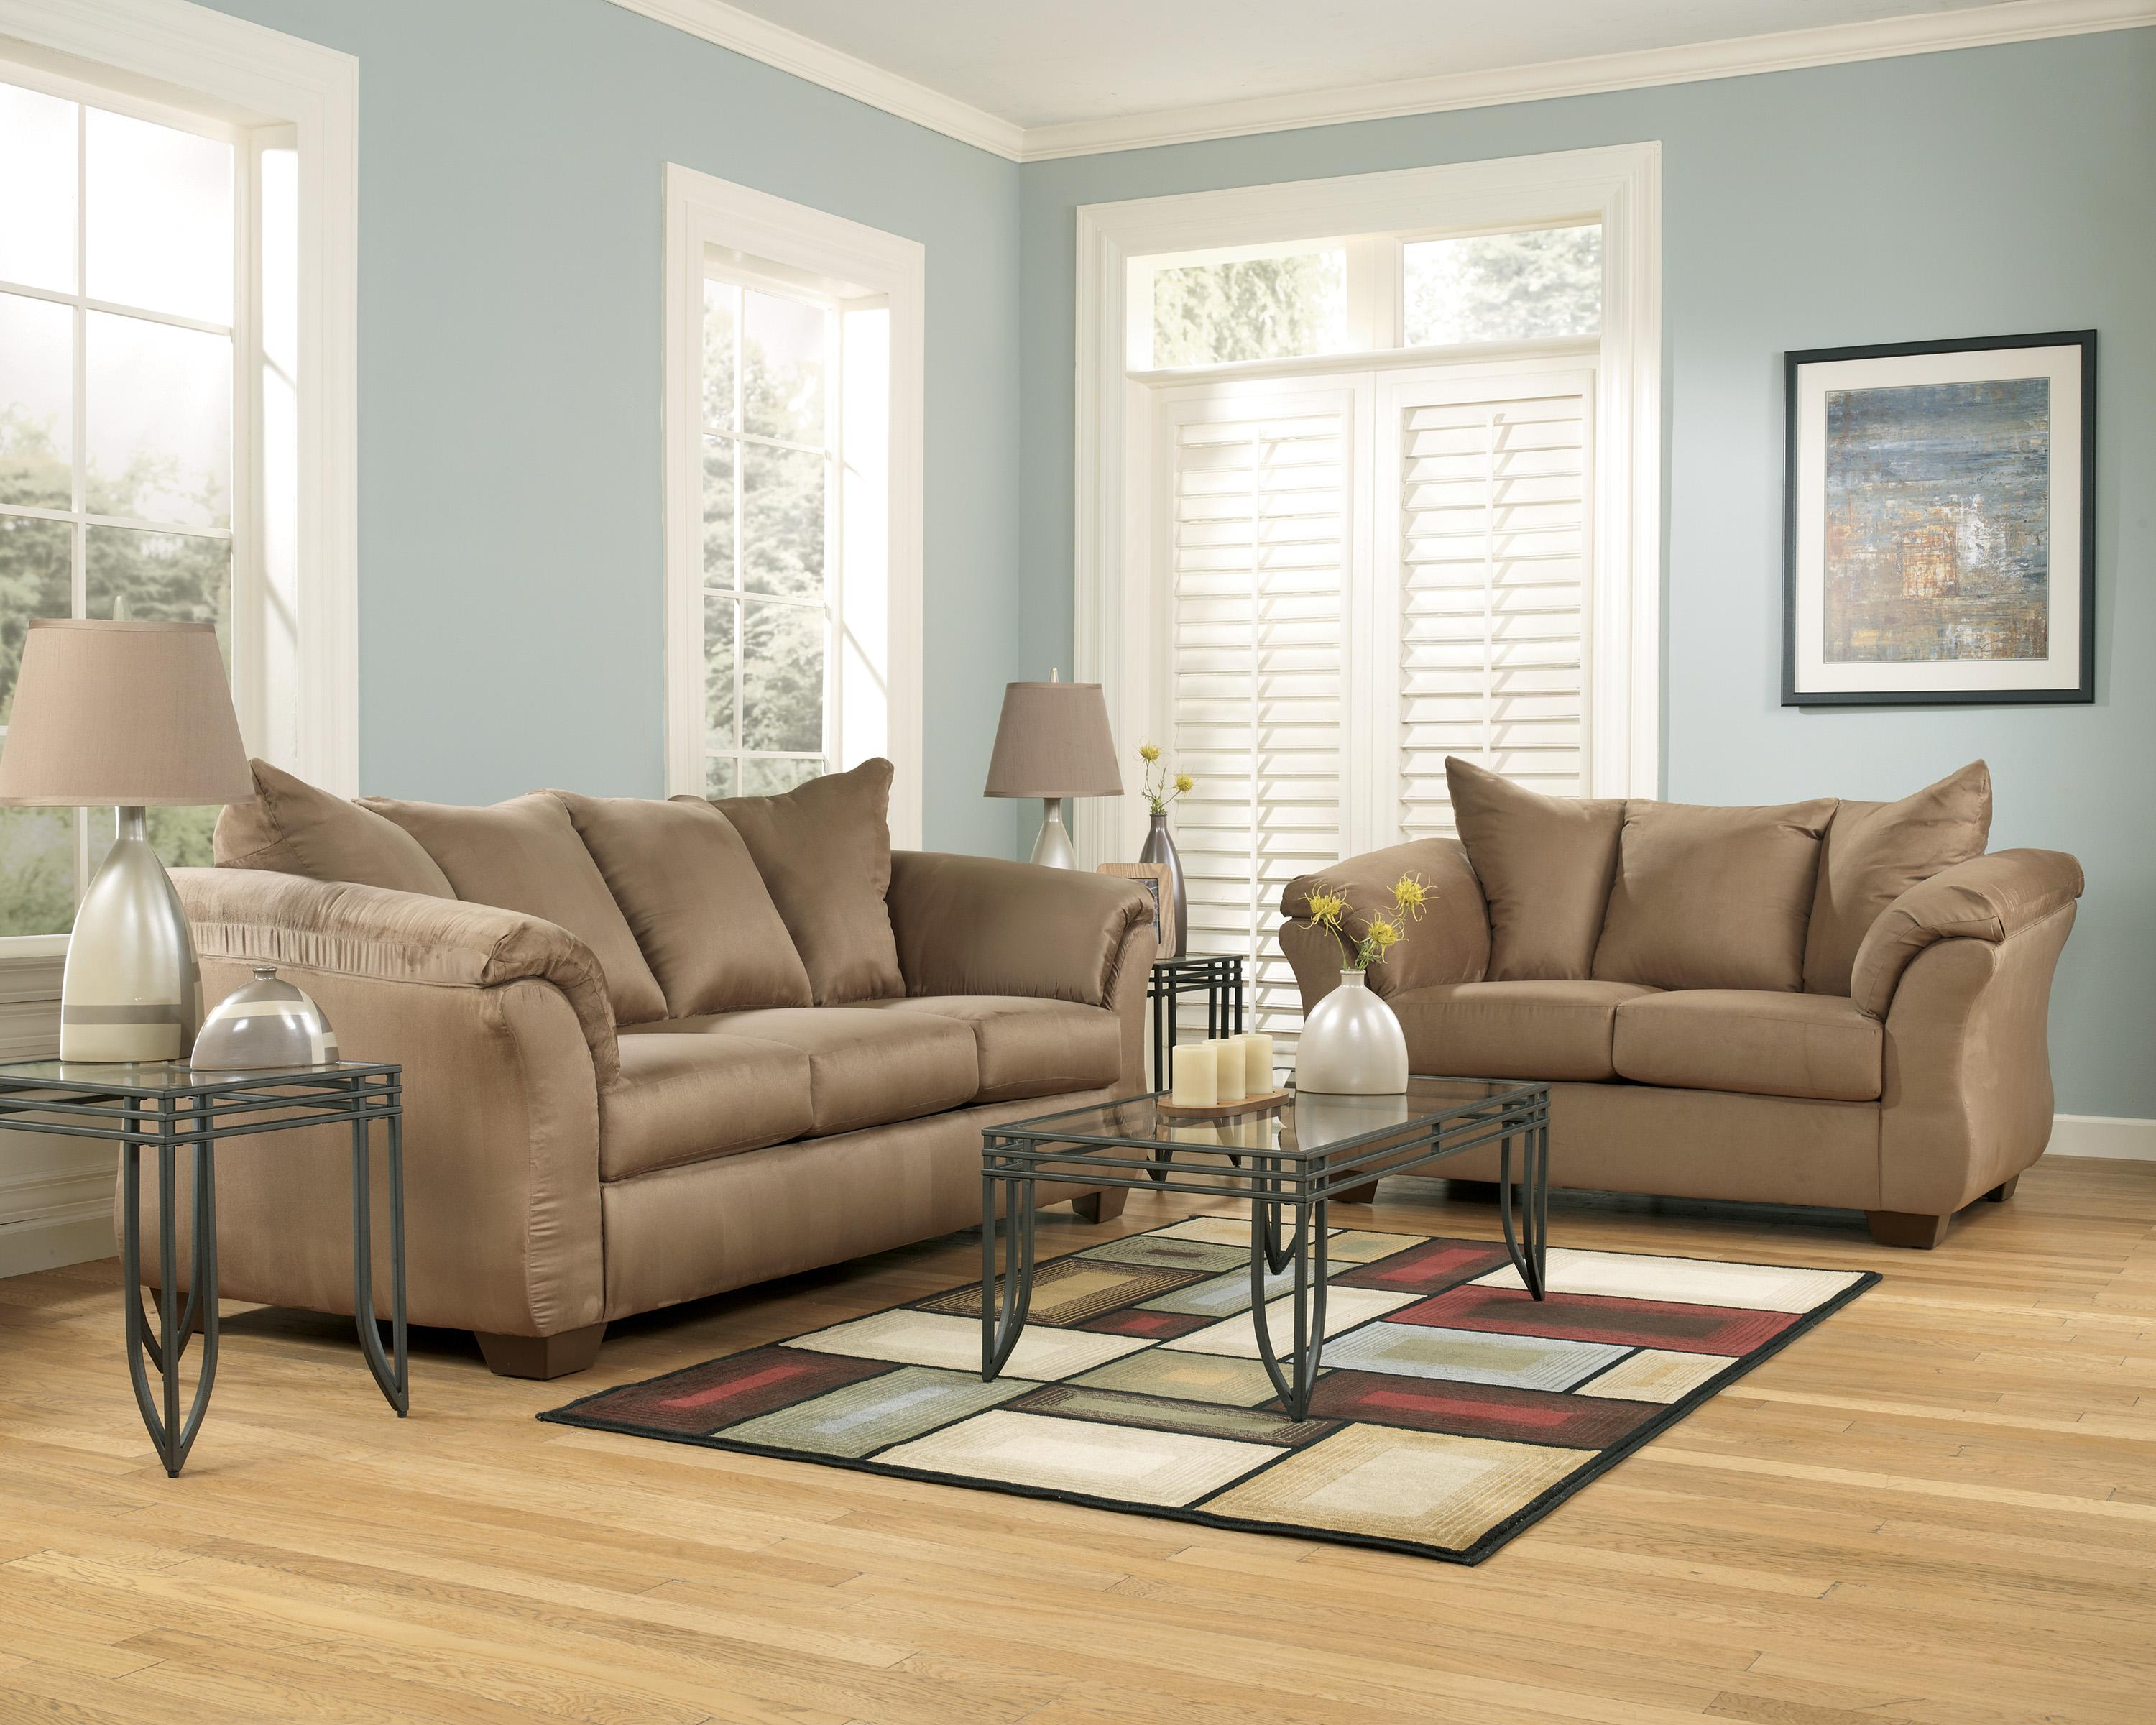 Signature Design by Ashley Darcy Mocha Contemporary Sectional